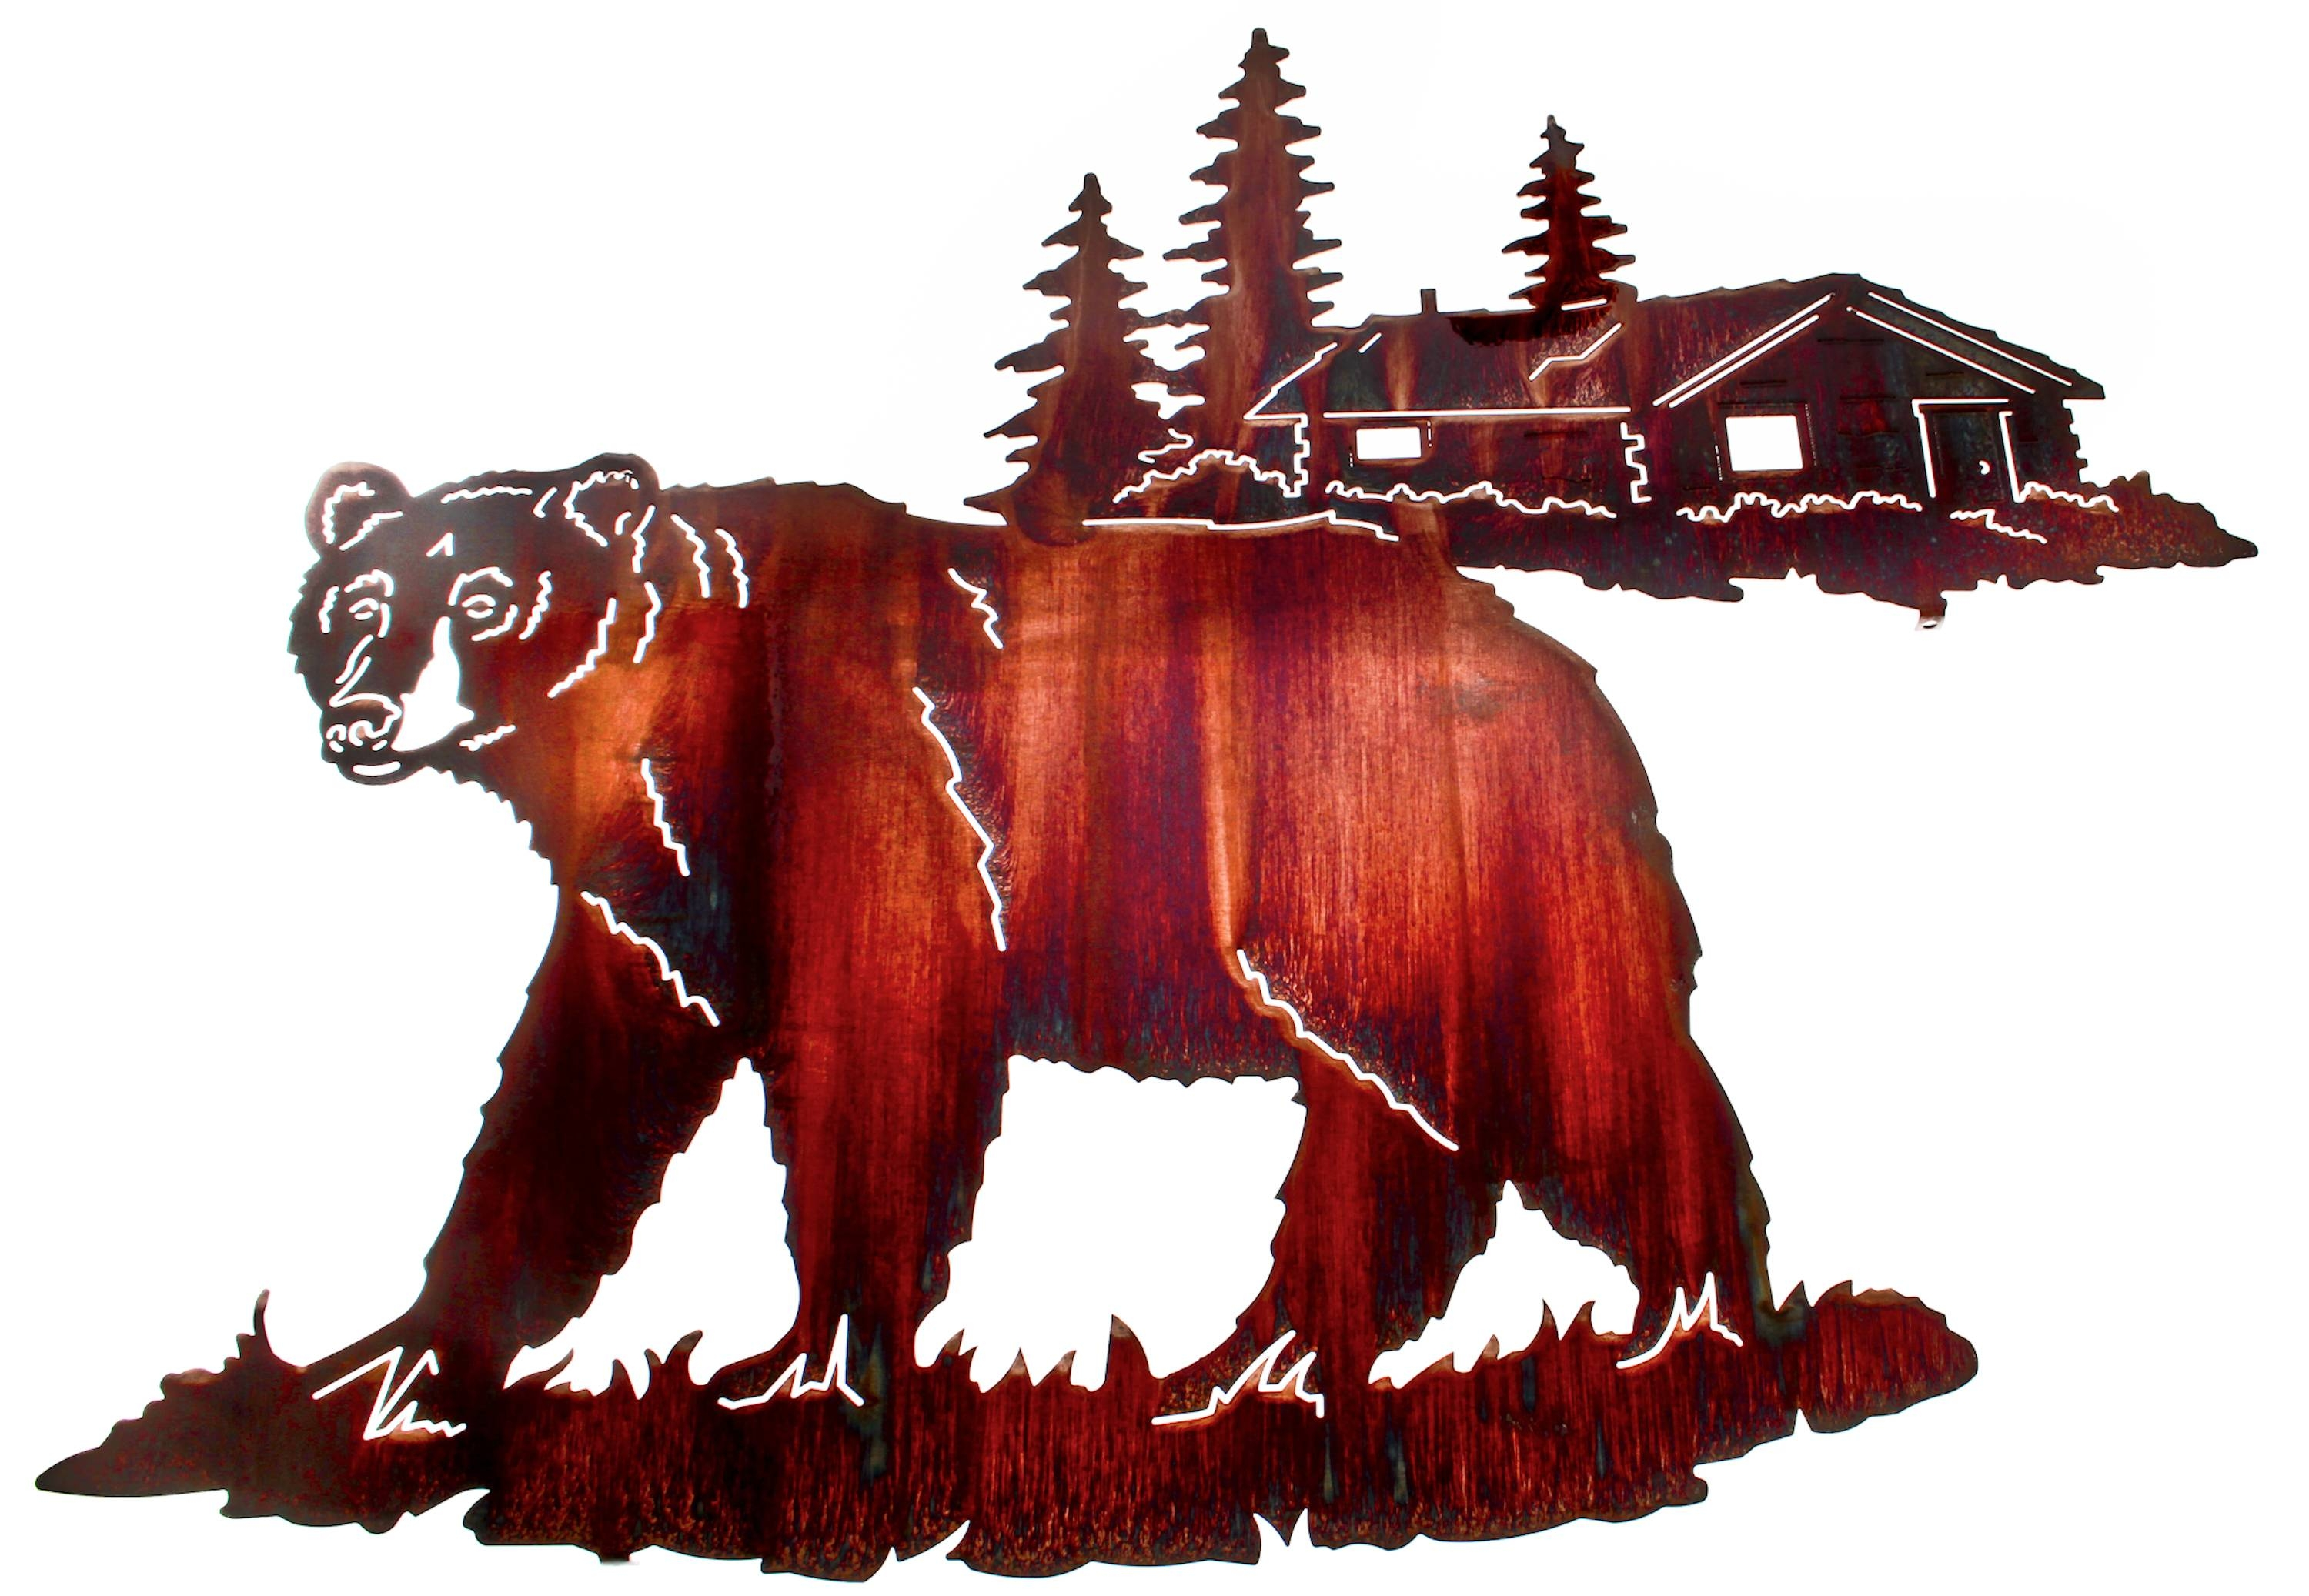 Bear Wall Art, Bear Wall Hangings, Metal Wall Sculptures Regarding Recent Bear Metal Wall Art (View 6 of 20)